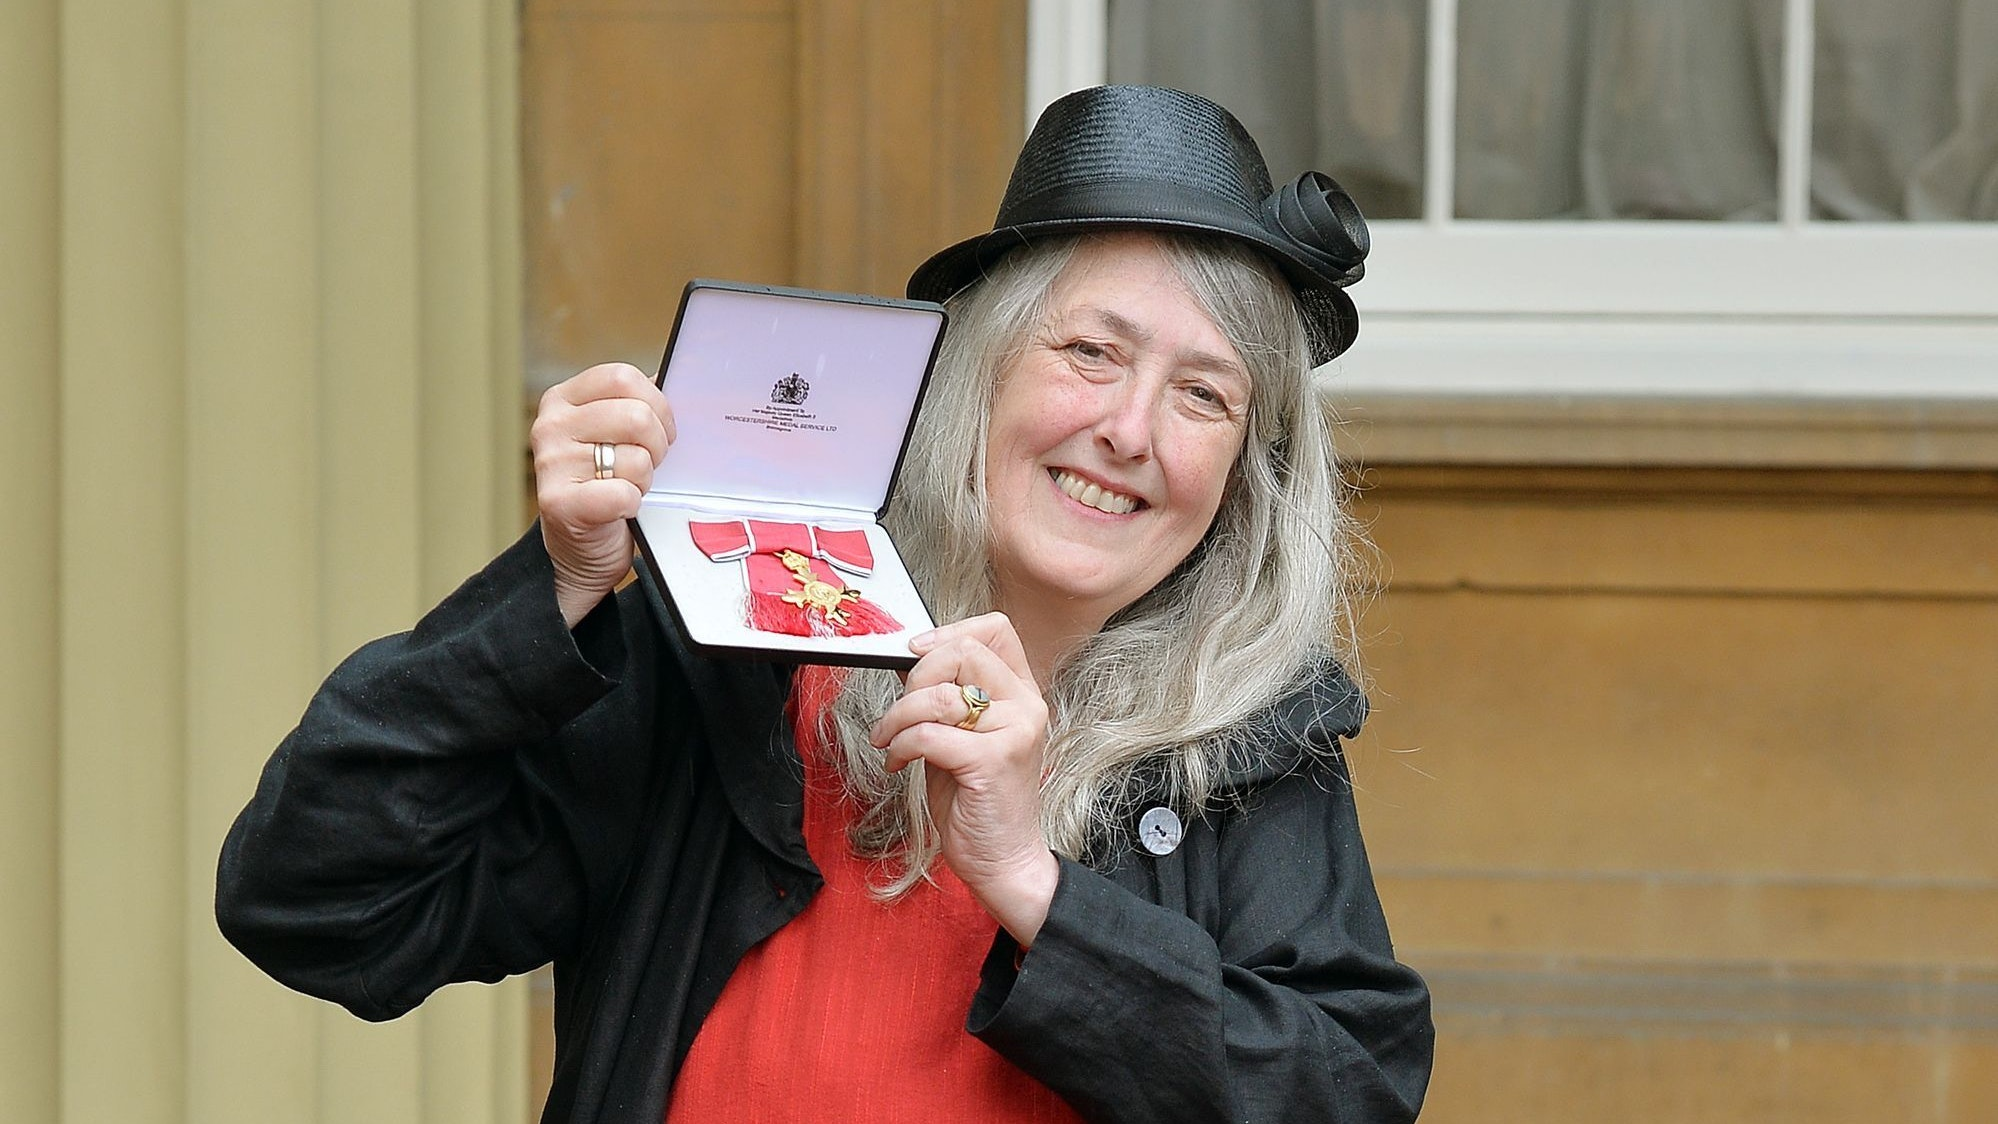 Alison Steadman Nude mary beard to examine nudes in art for new bbc two series   bt